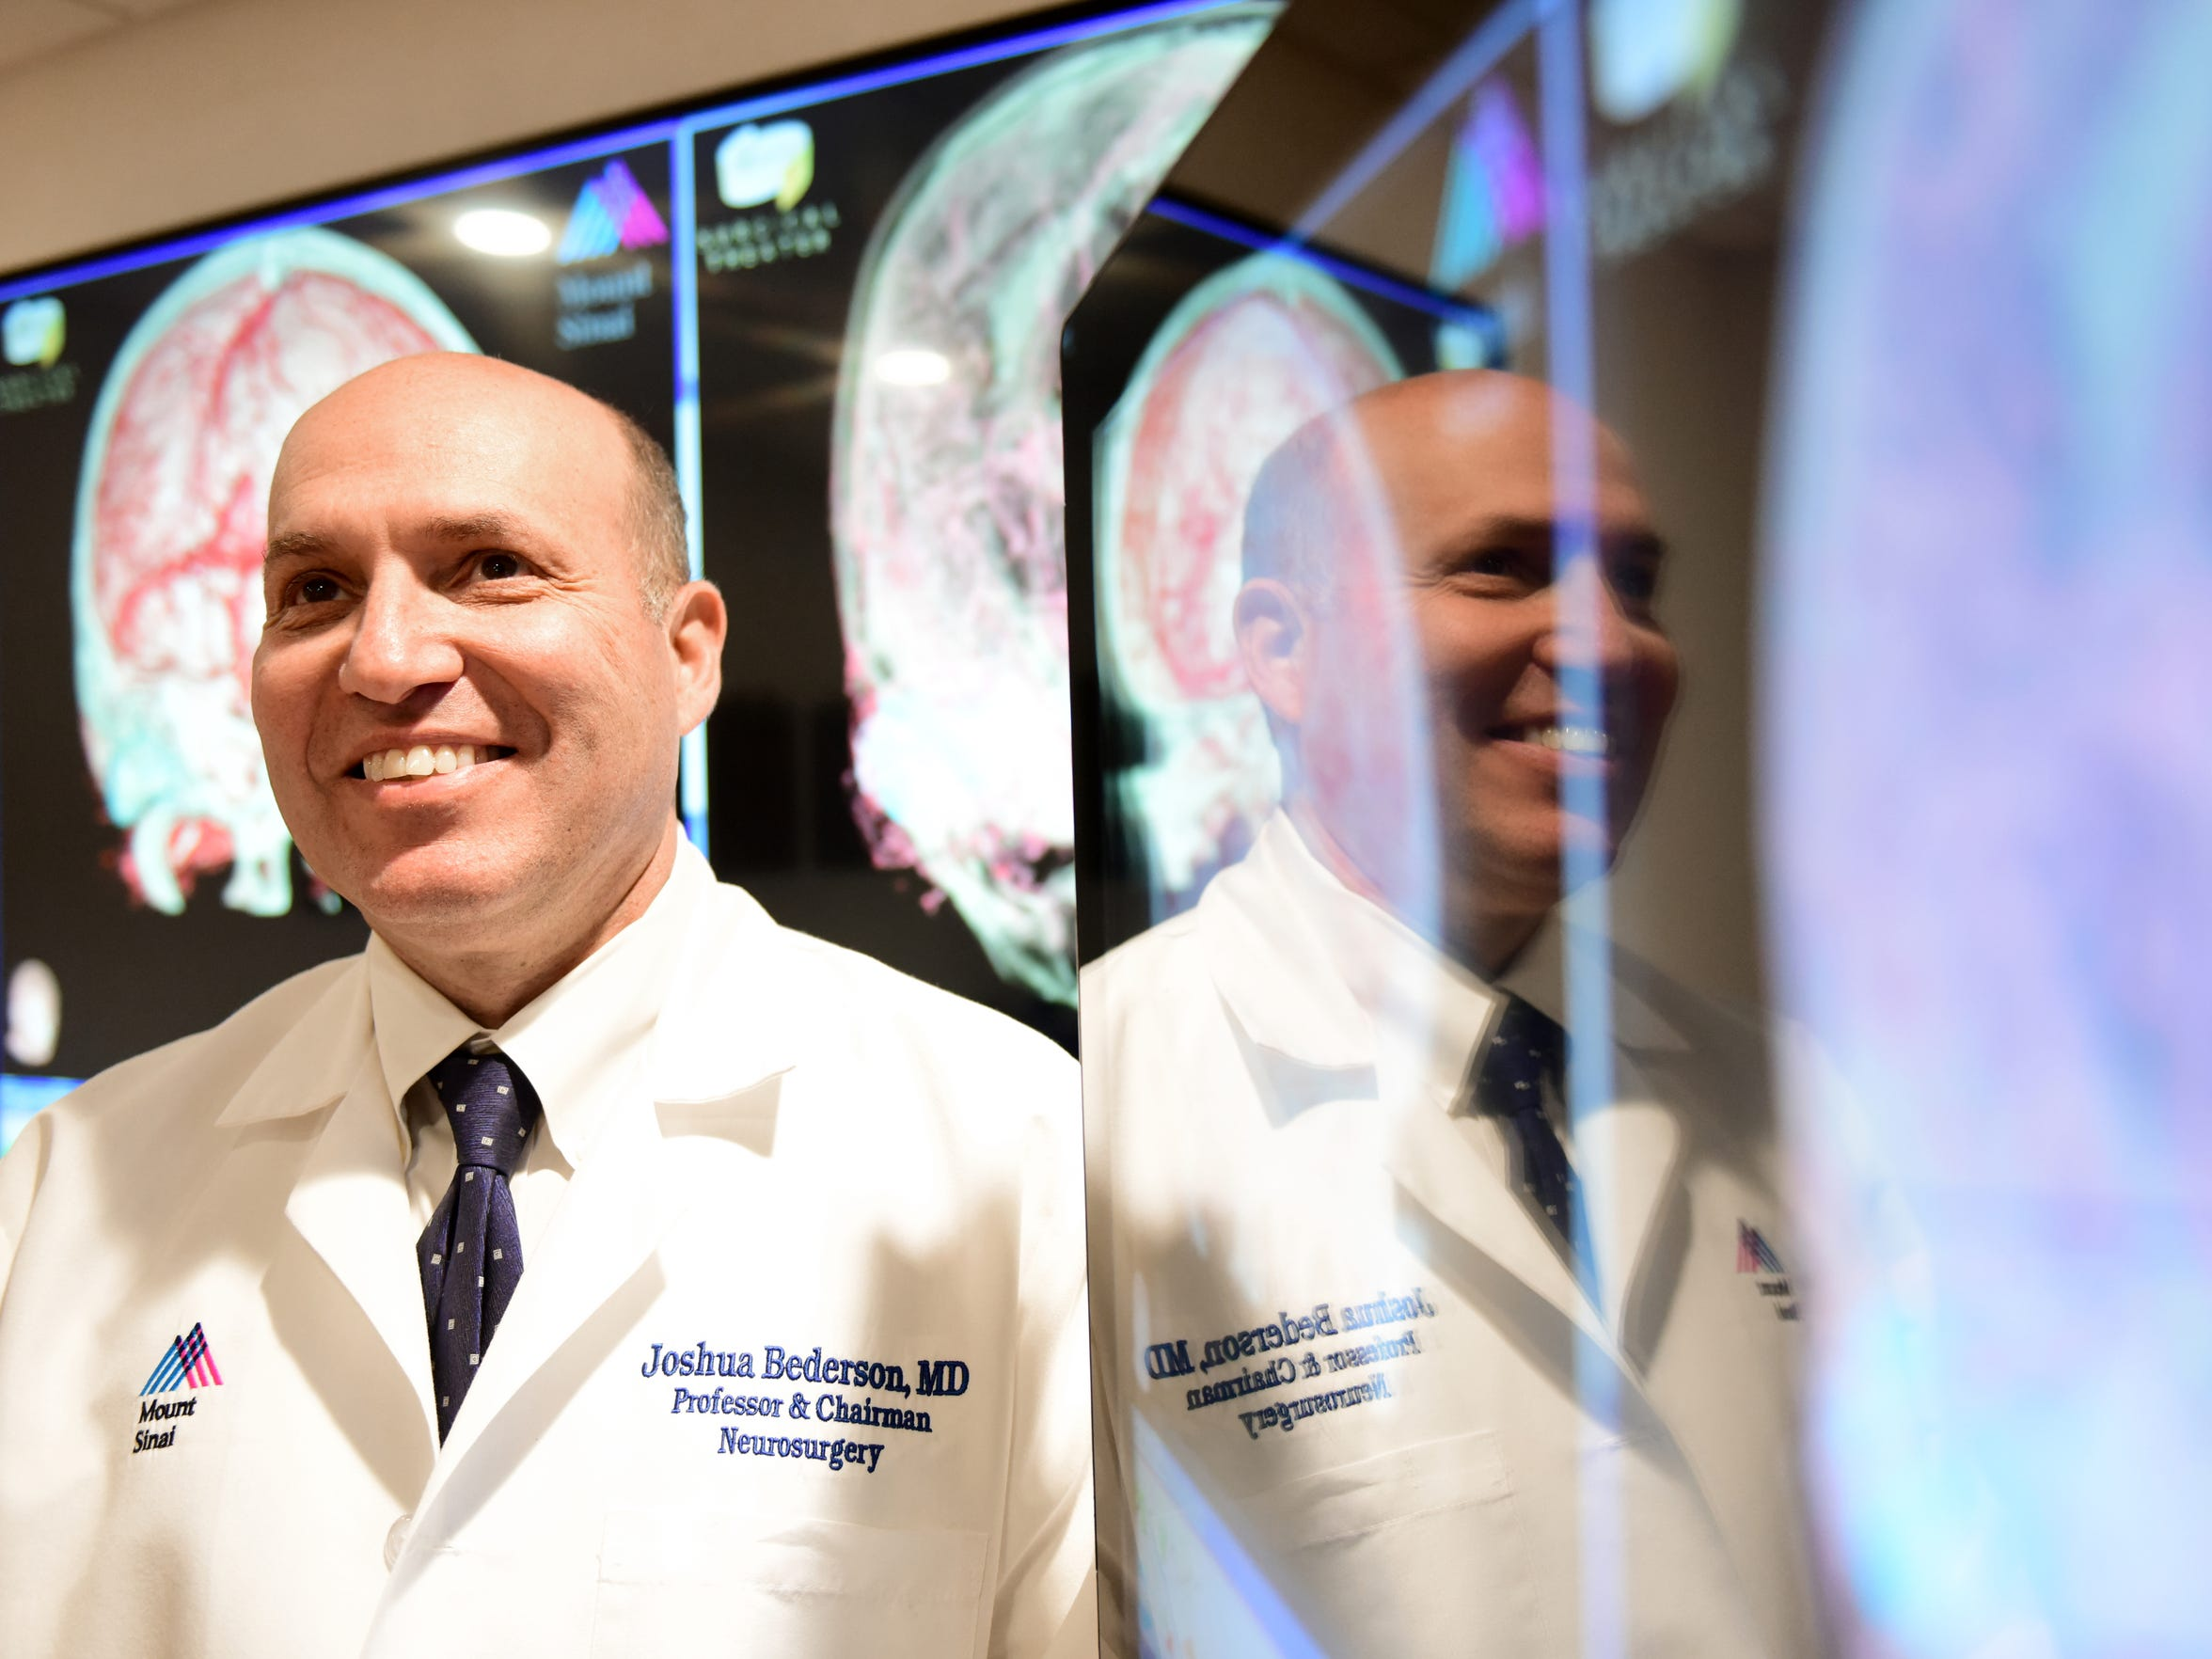 Dr Joshua Bederson, Chairman of Neurosurgery at Mount Sinai Hospital, performed surgery on Josh Schultz to remove a tumor from his head.